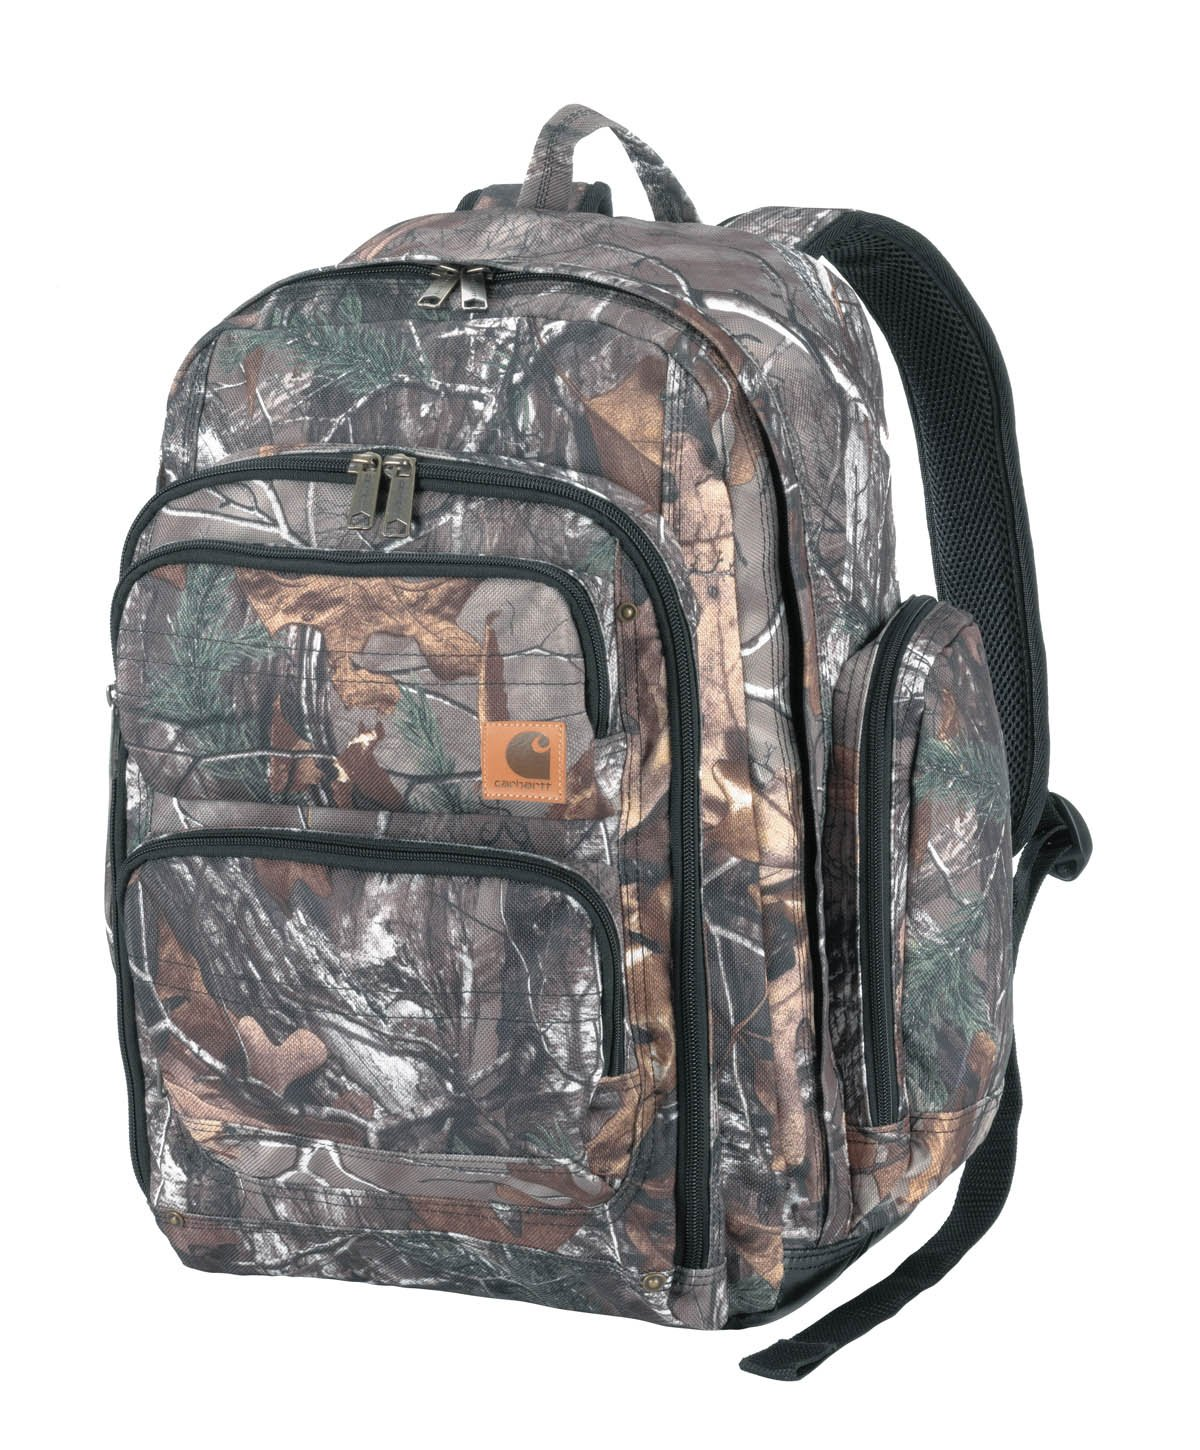 Carhartt Deluxe Work Pack, RealTree Xtra Camo, One Size